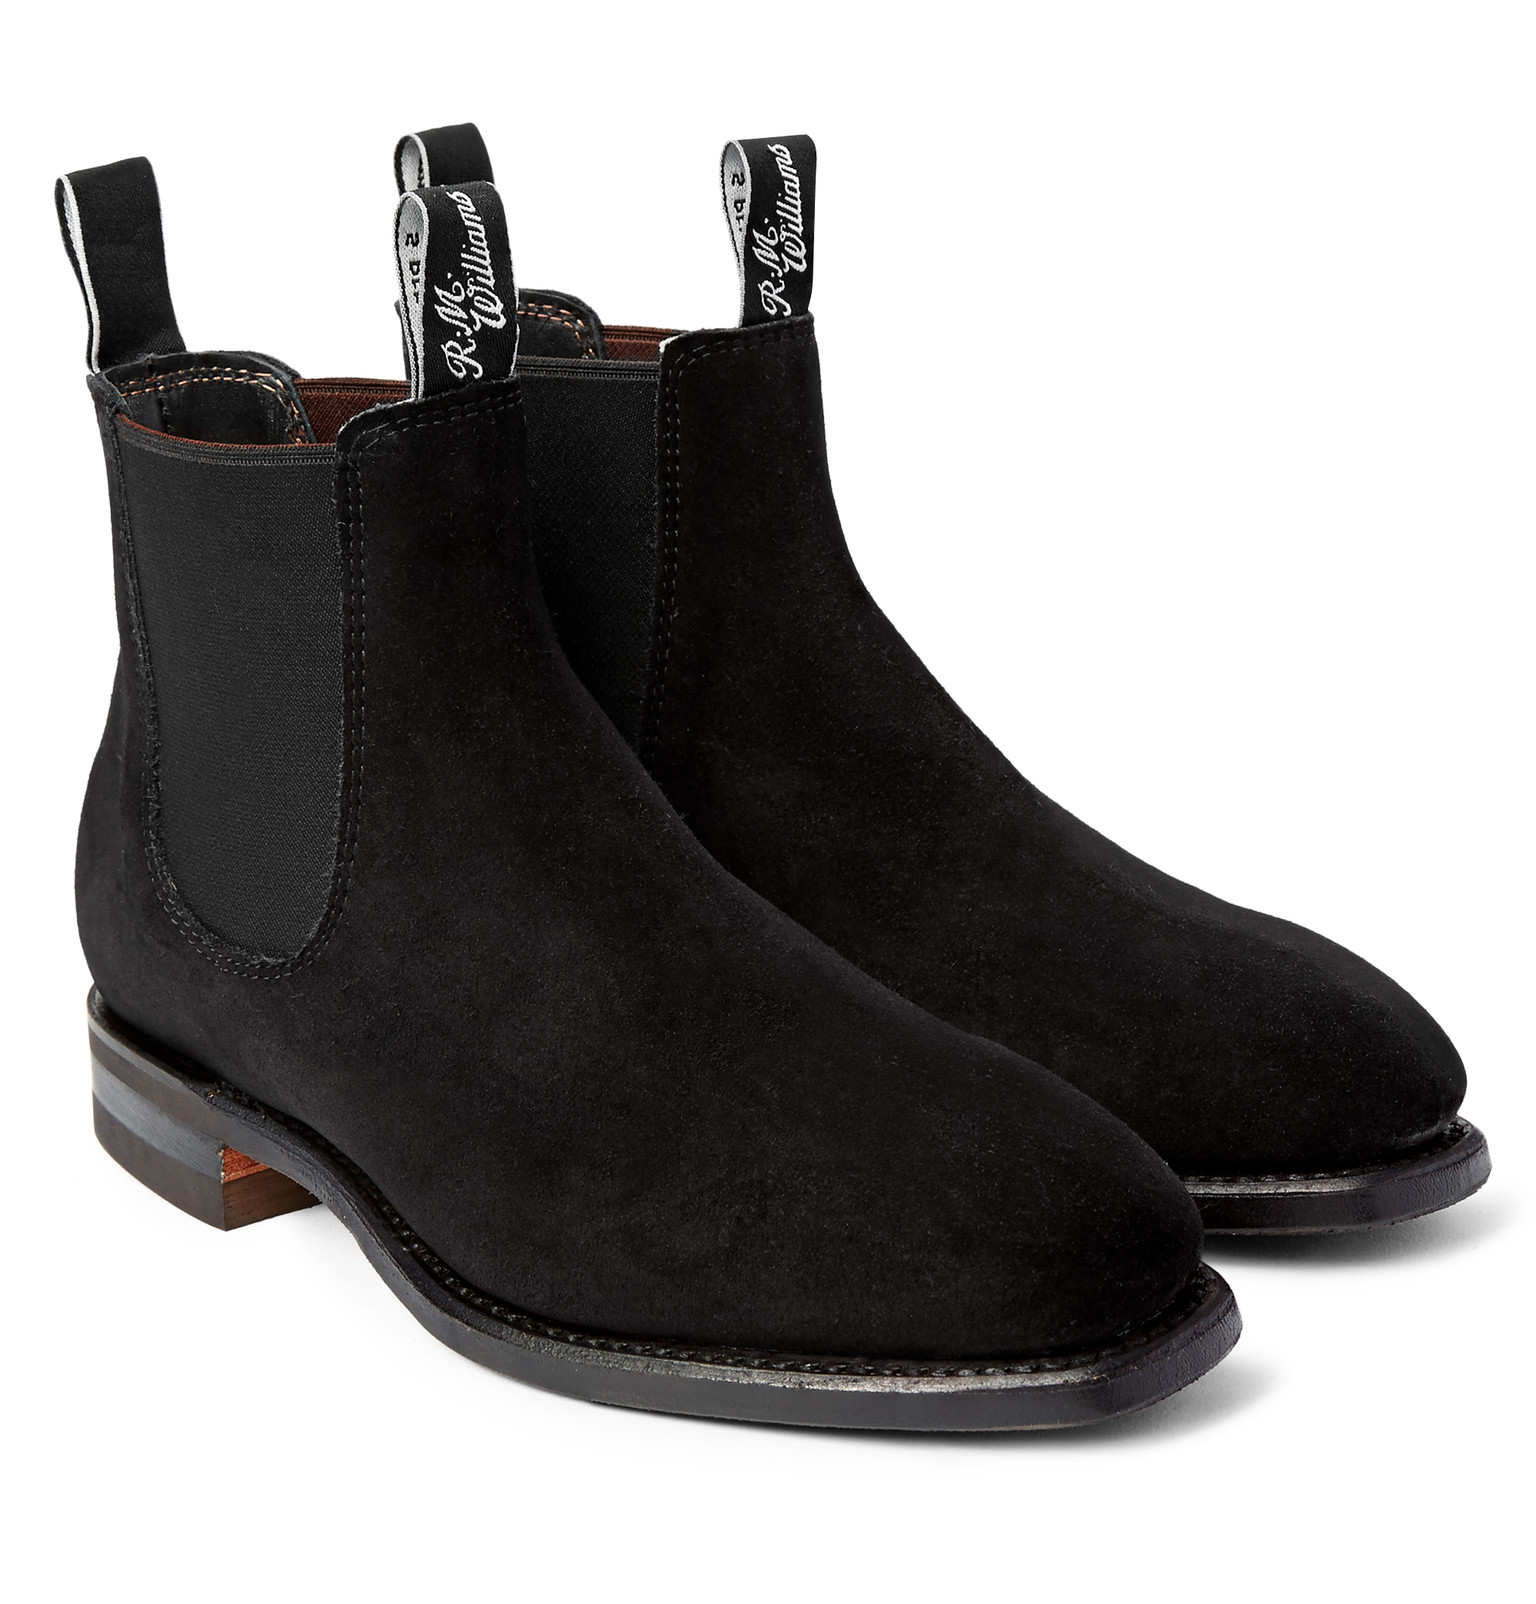 R.m. williams Comfort Craftsman Suede Chelsea Boots in ...